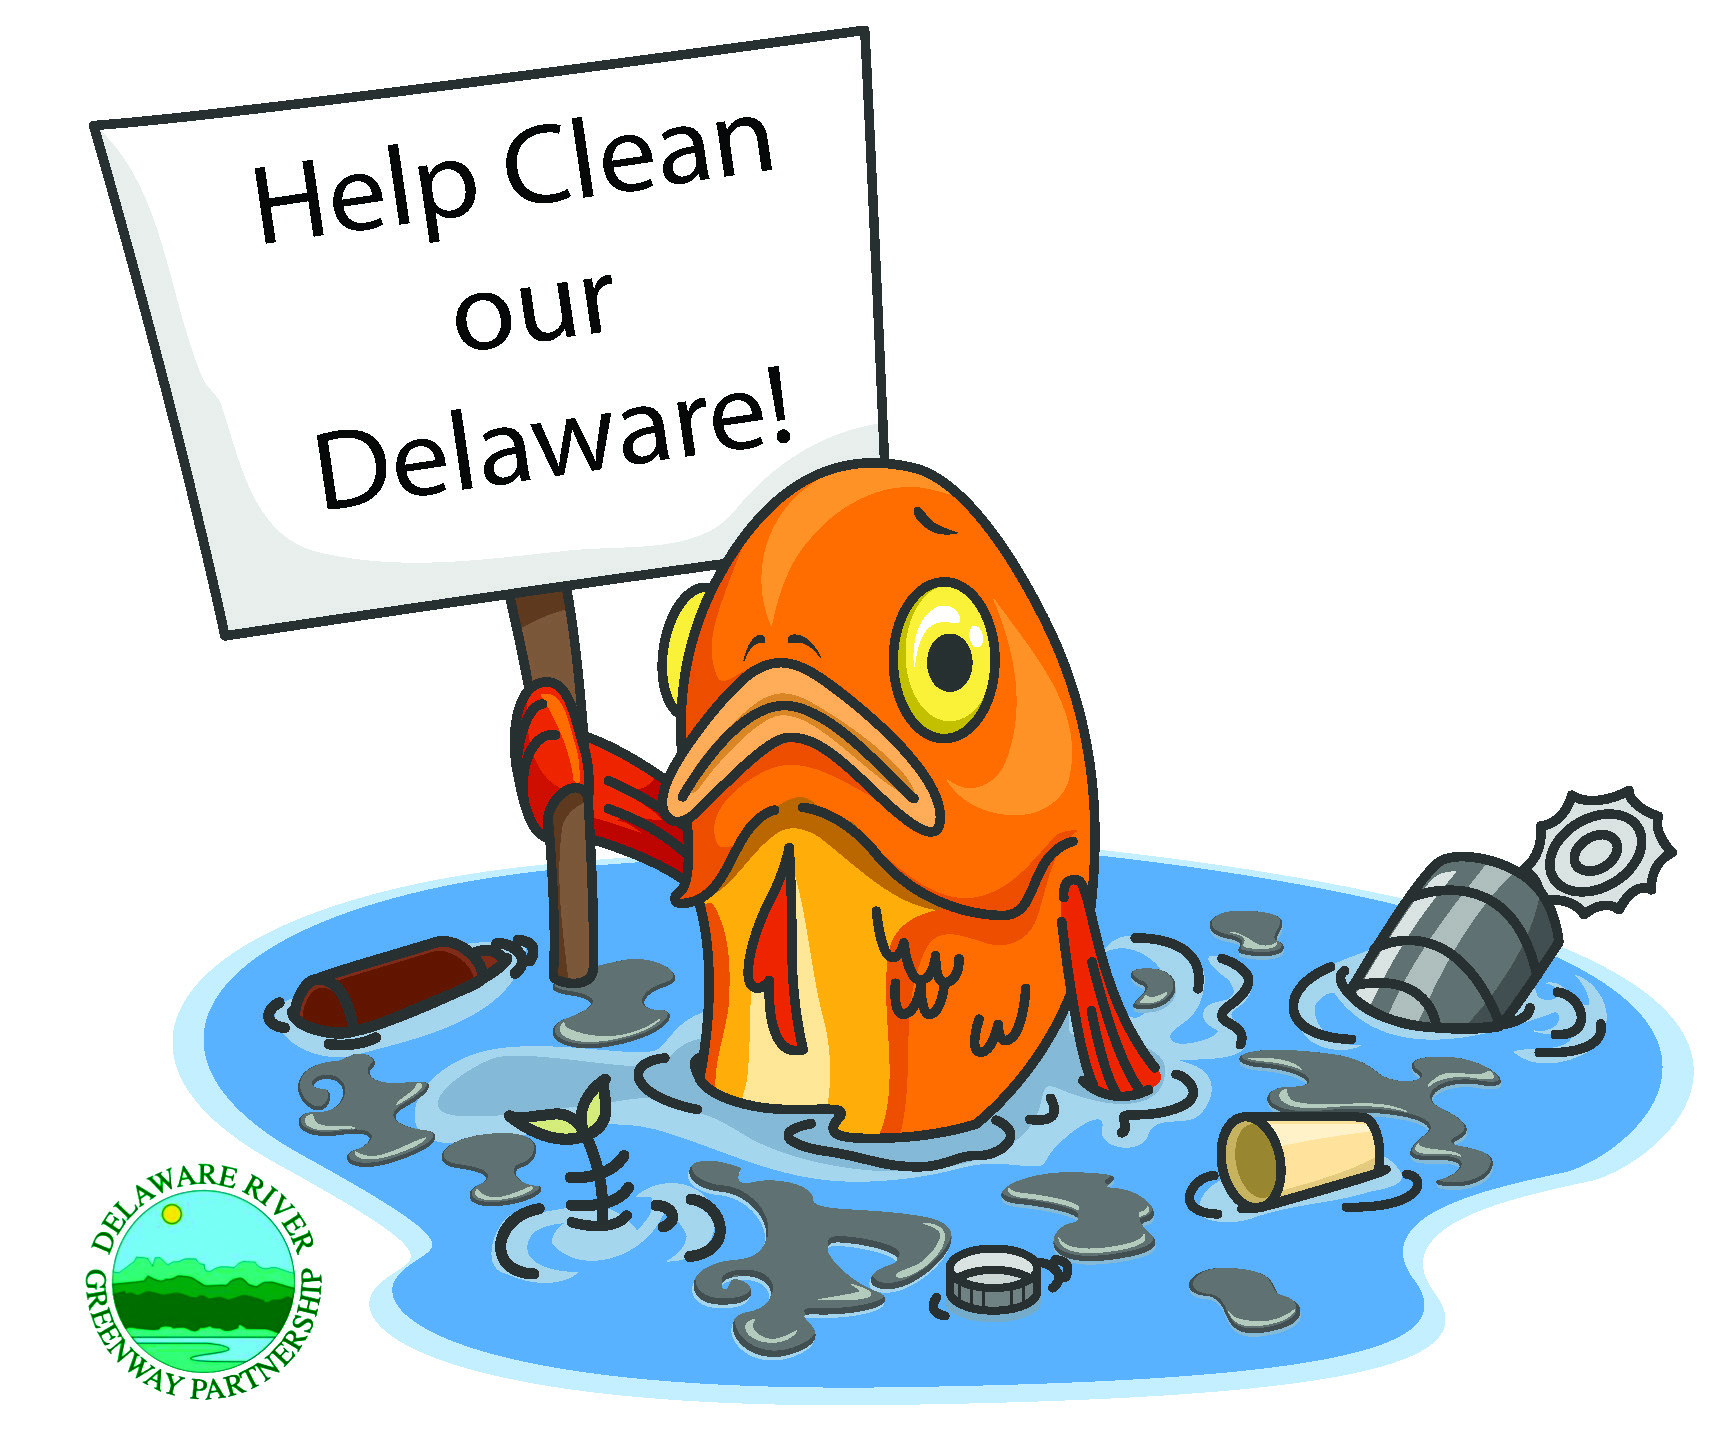 3rd annual Delaware River Cleanup